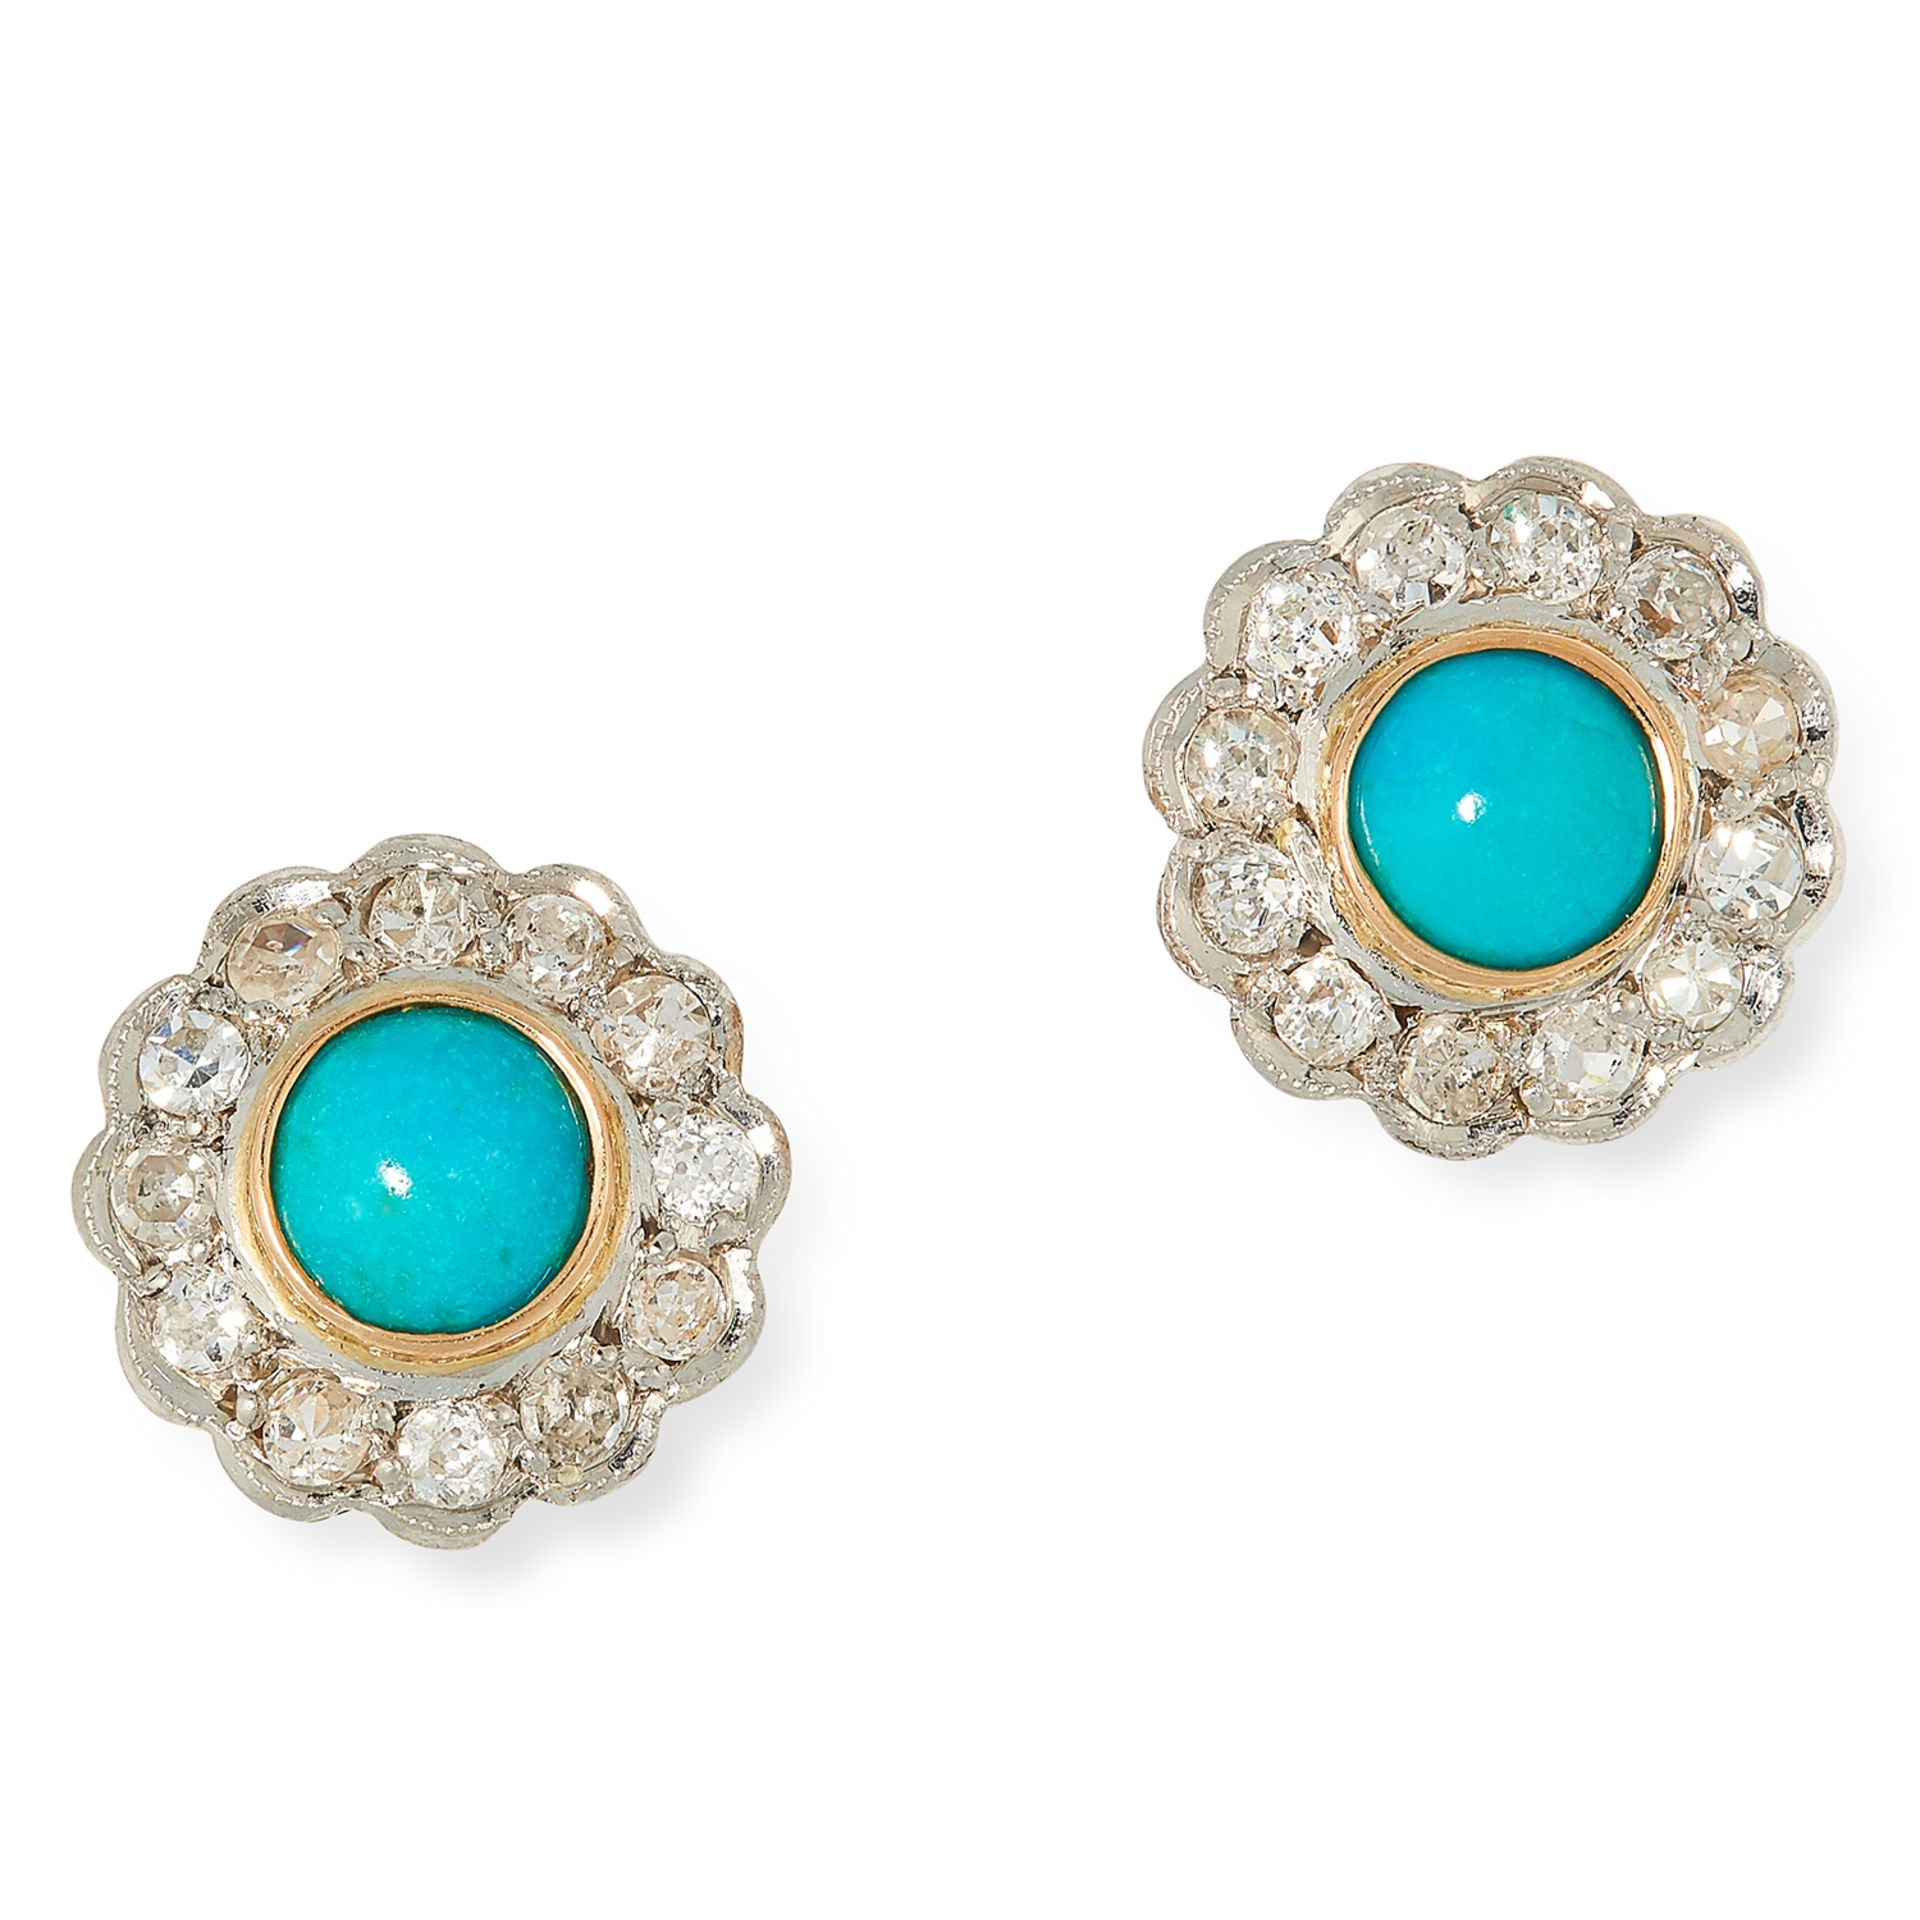 TURQUOISE AND DIAMOND CLUSTER EARRINGS each set with a cabochon turquoise in a border of old cut